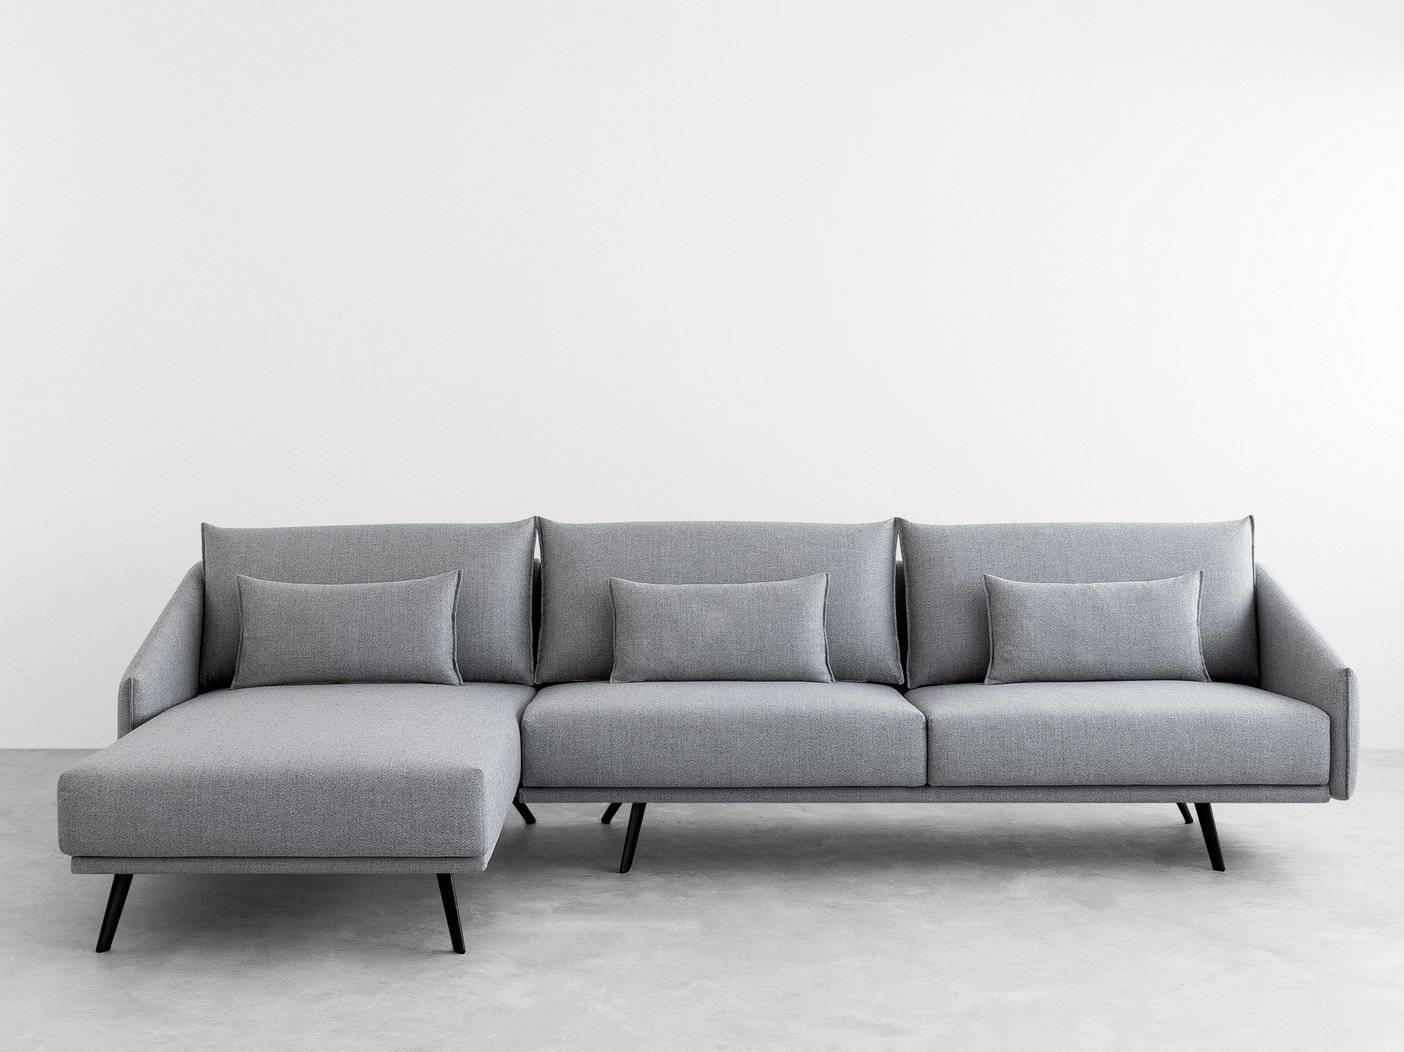 Costura sofa with chaise longue costura collection by stua for Chaise longue sofa